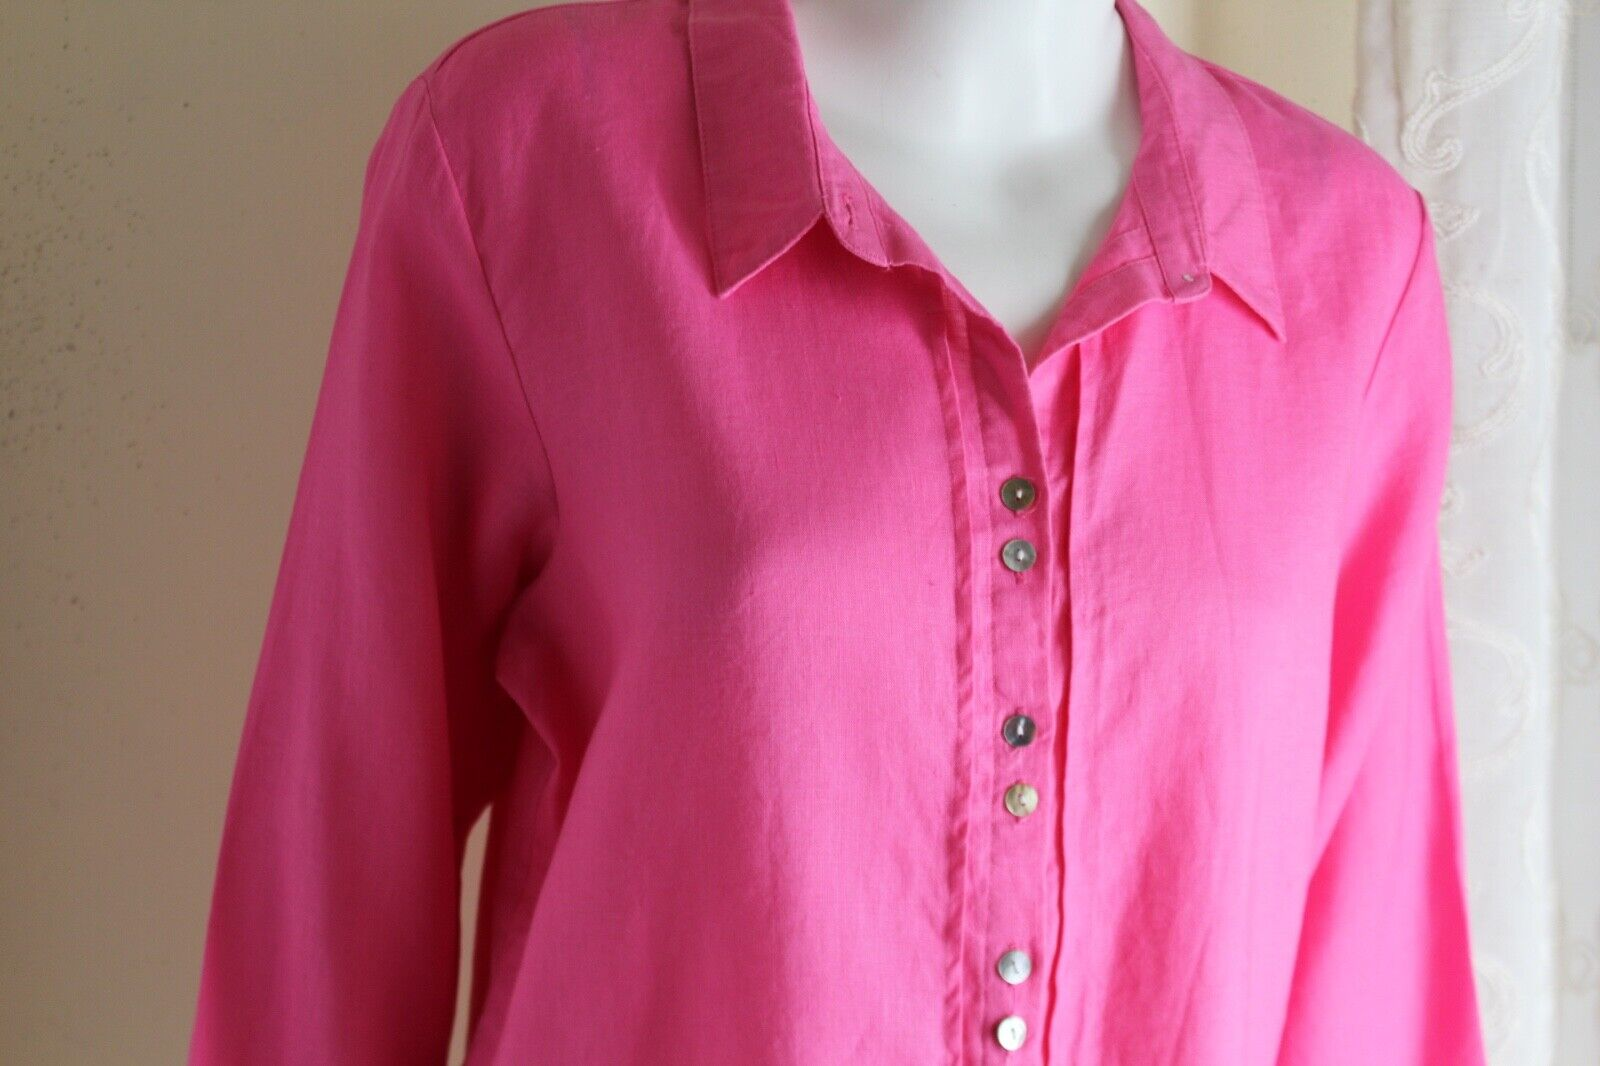 HABITAT Sz L Art-to-Wear Classic Rosa Breezy 100% Linen 3 4 Blouse Shirt Top